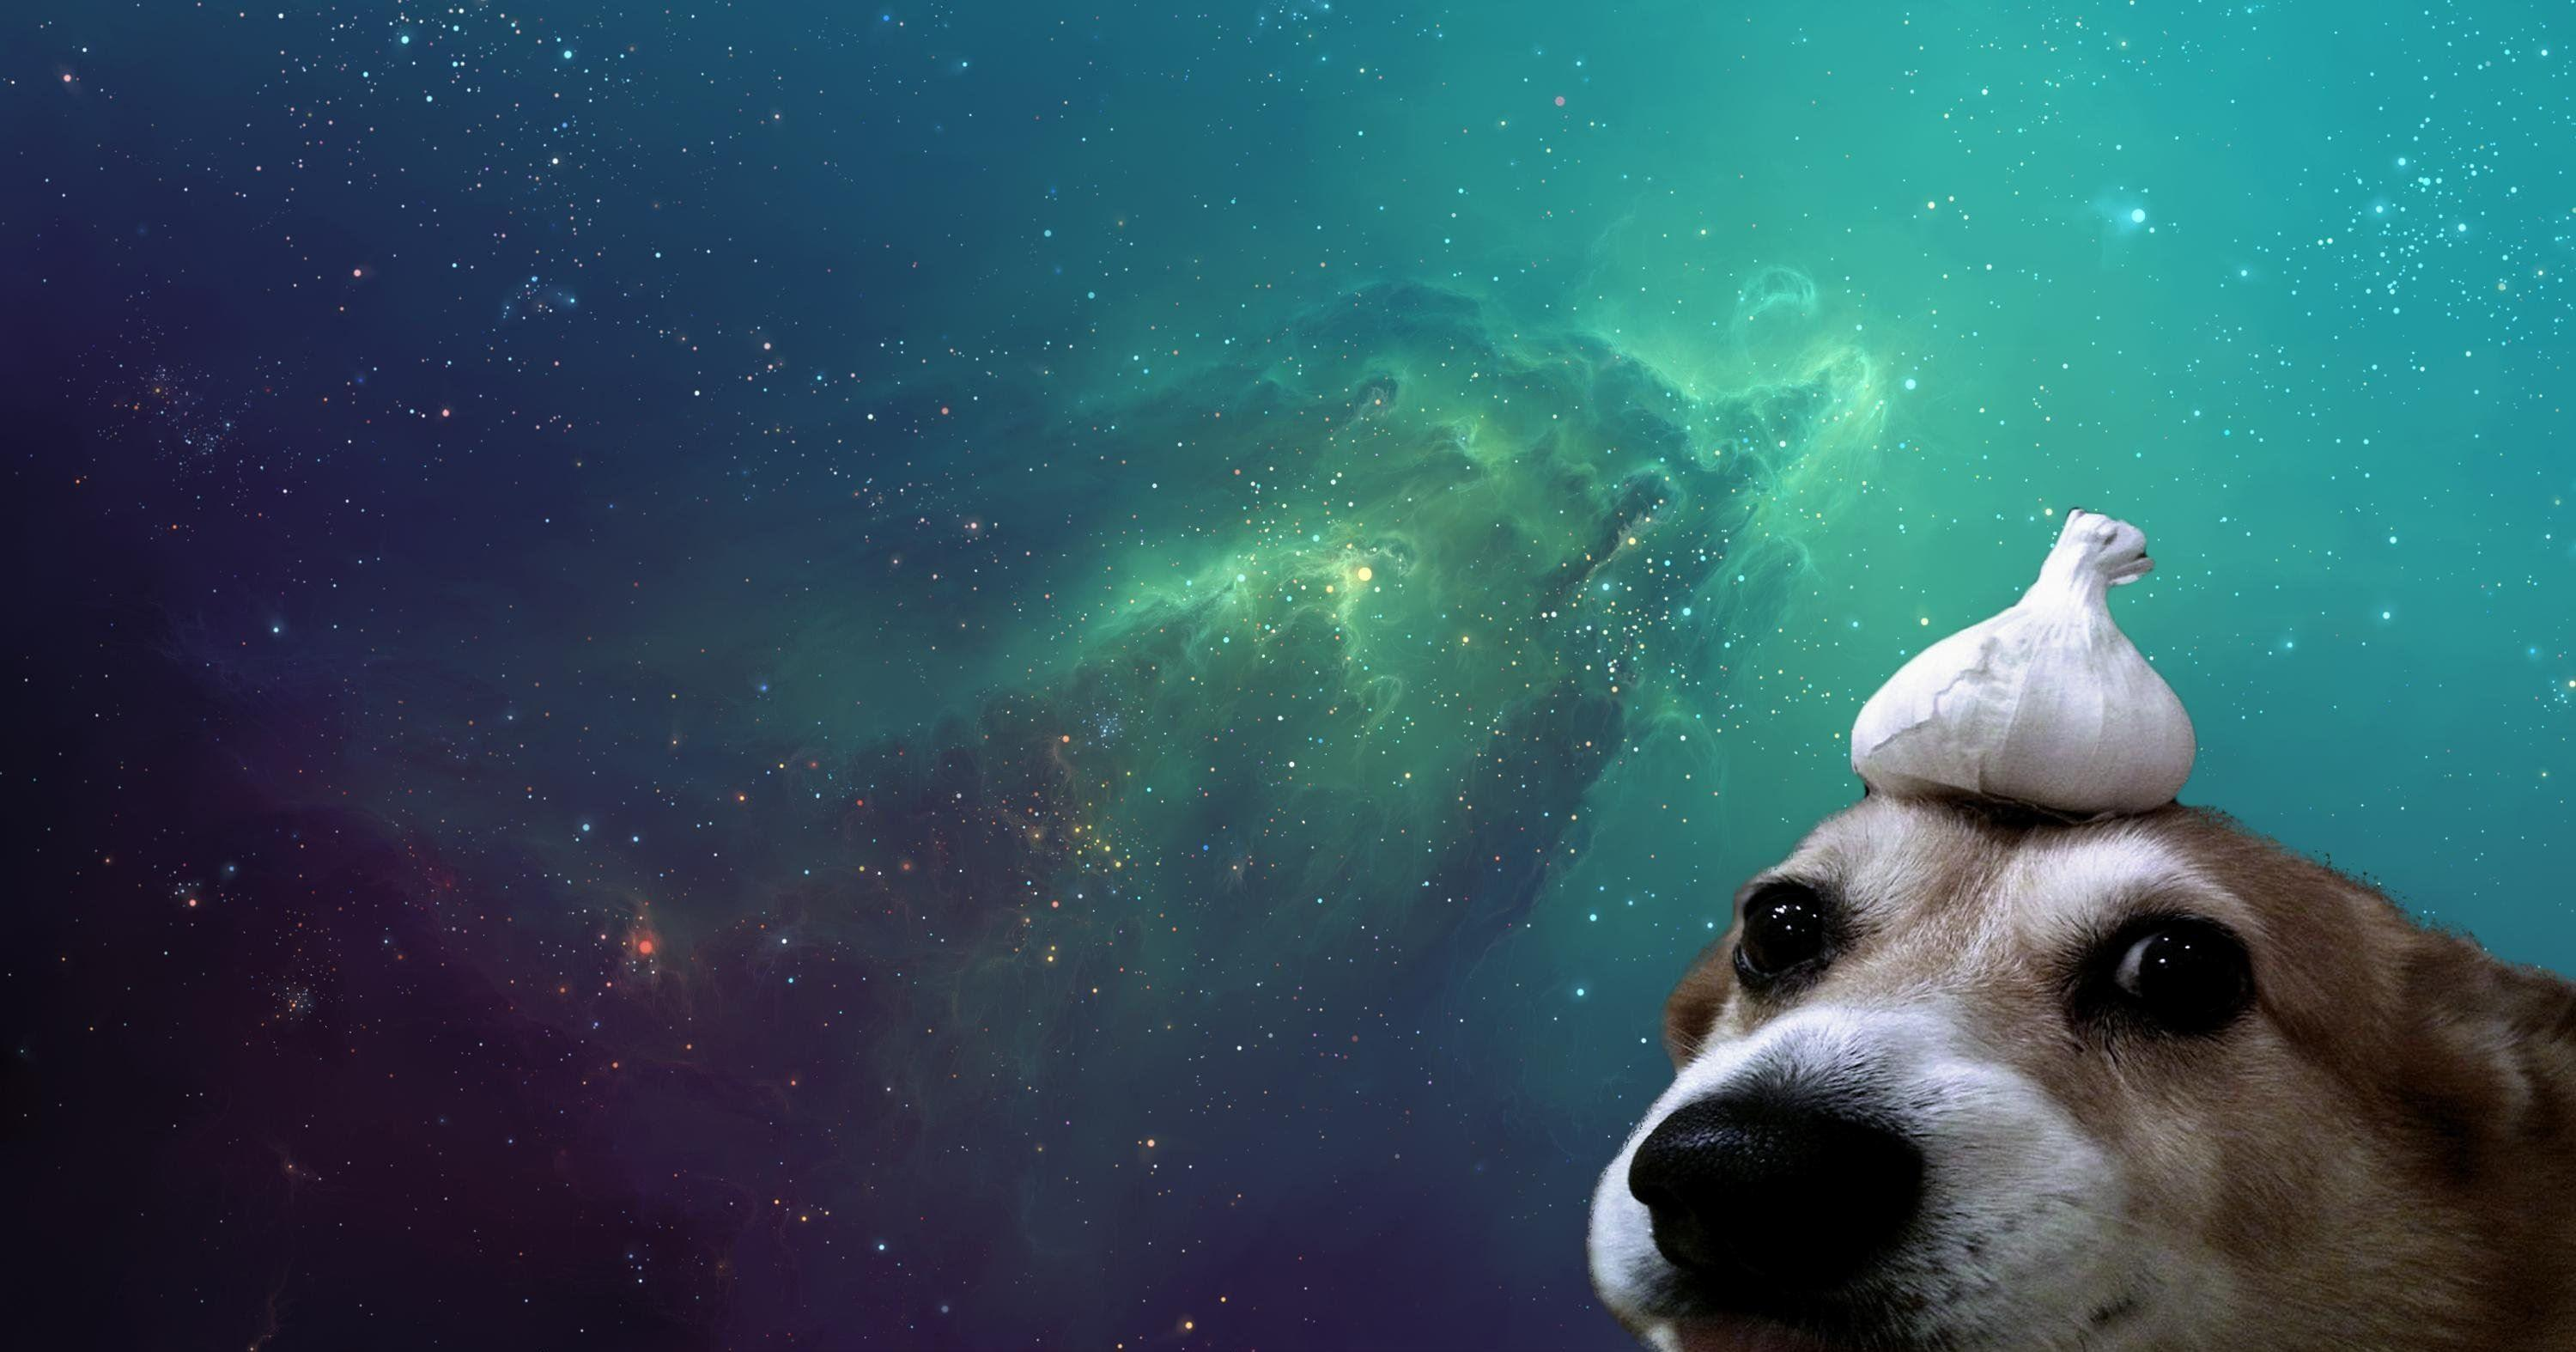 dog meme background wallpaper 72869